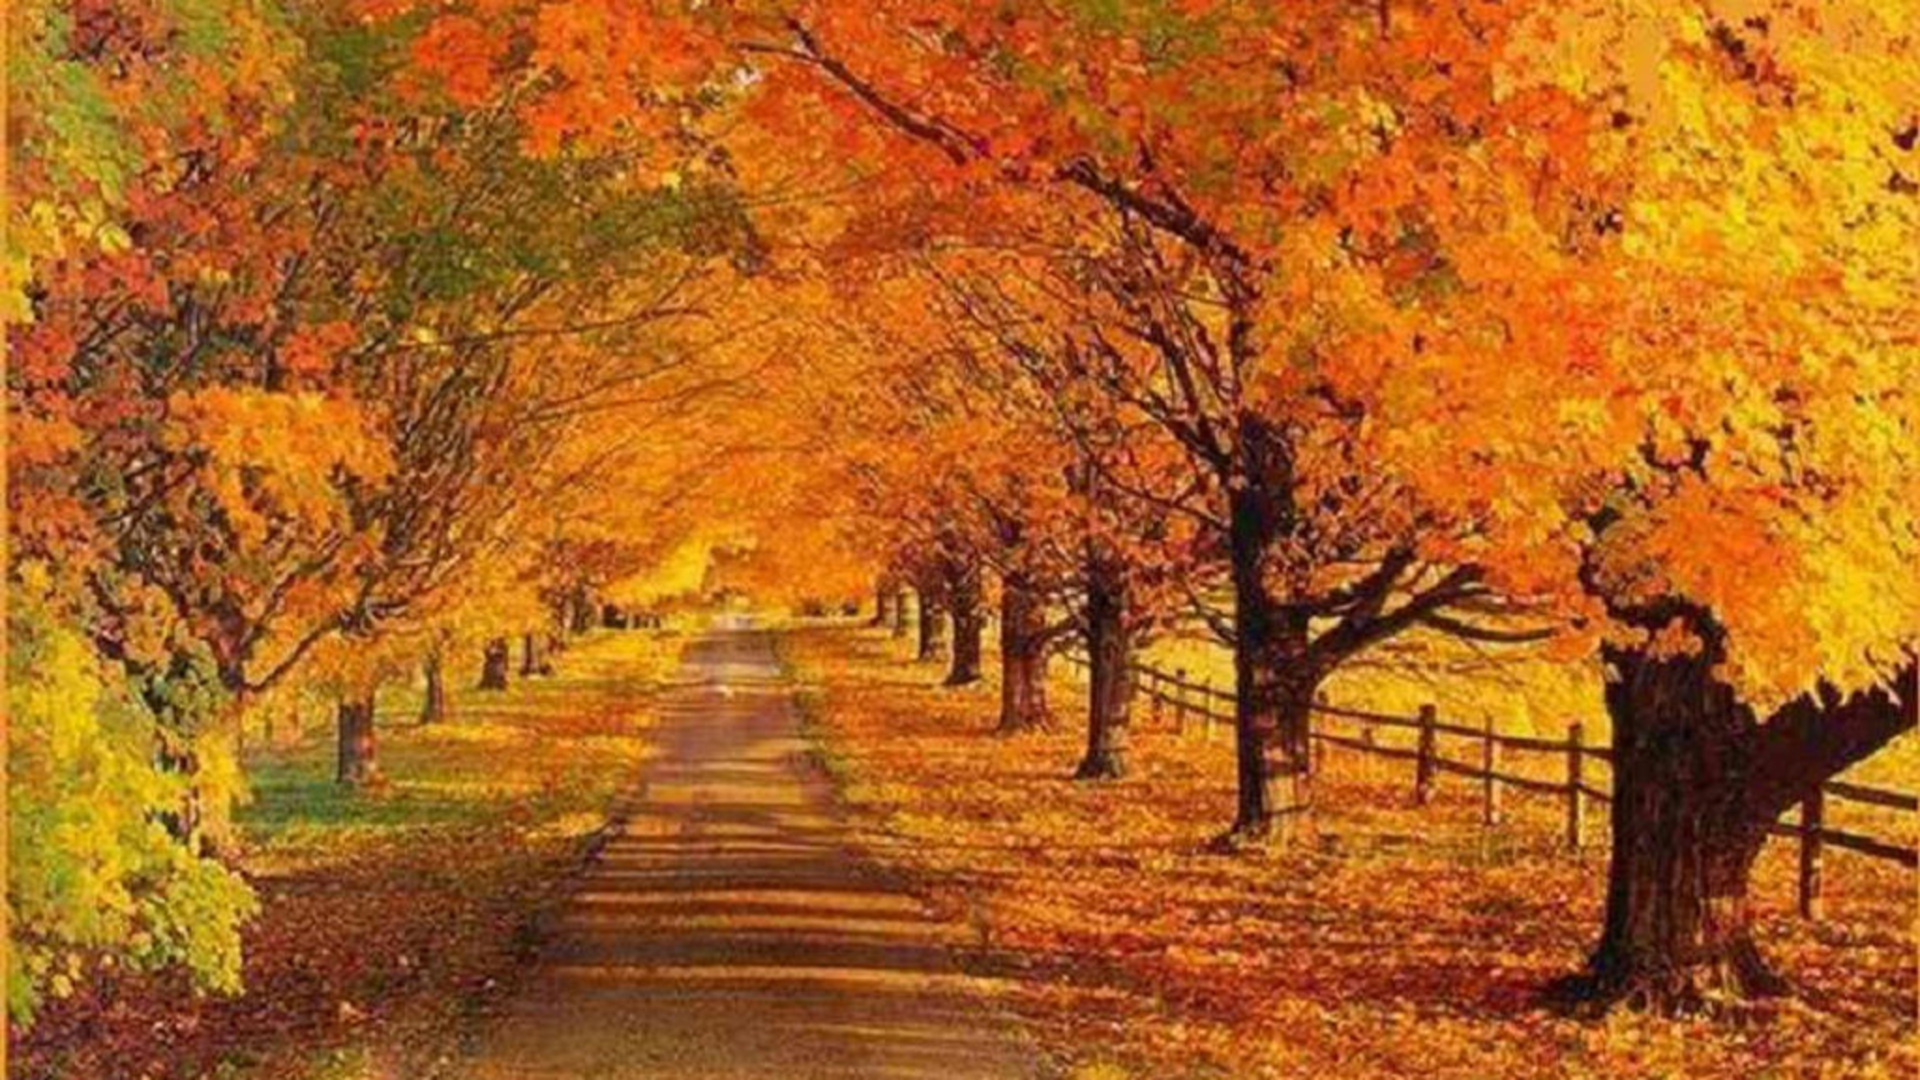 autumn road jpg wallpaper other landscape autumn road copyright od